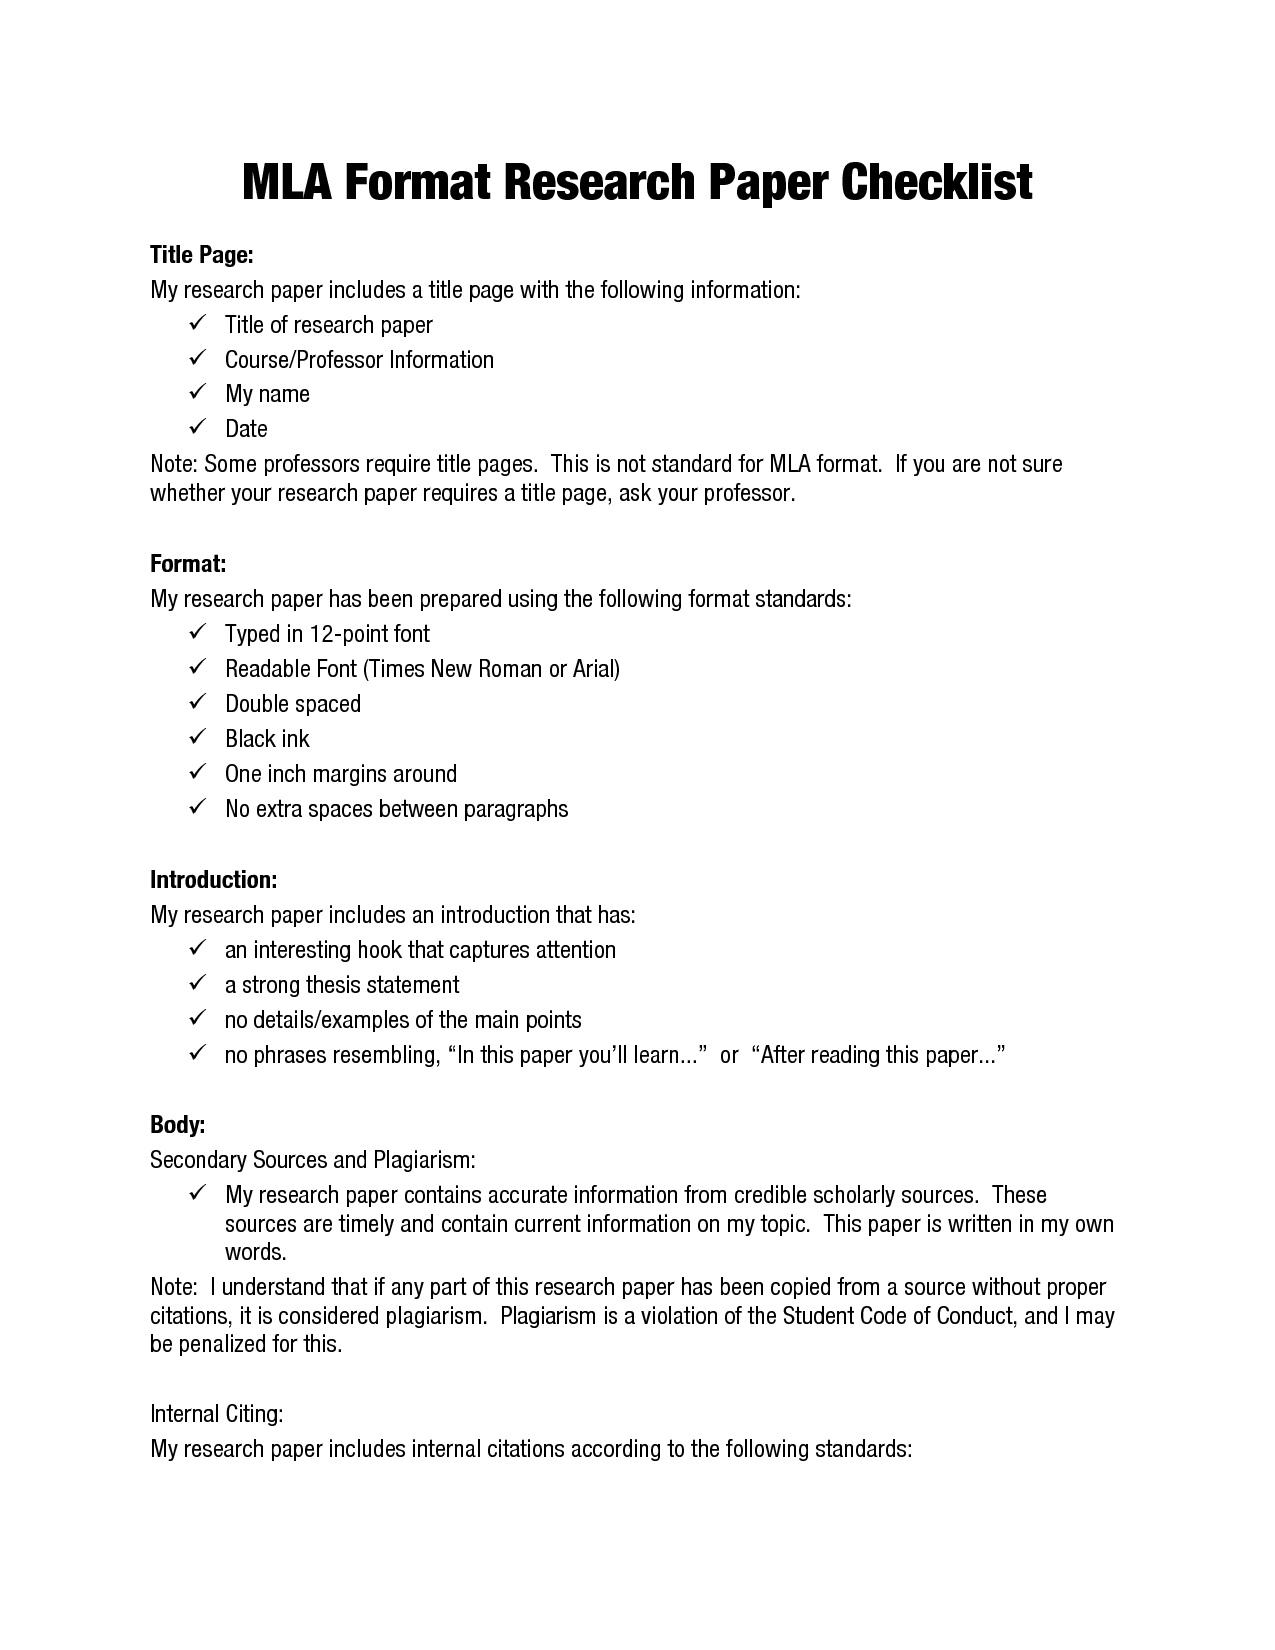 002 Checklist For Writing Research Paper In Apa Fearsome A Style Full